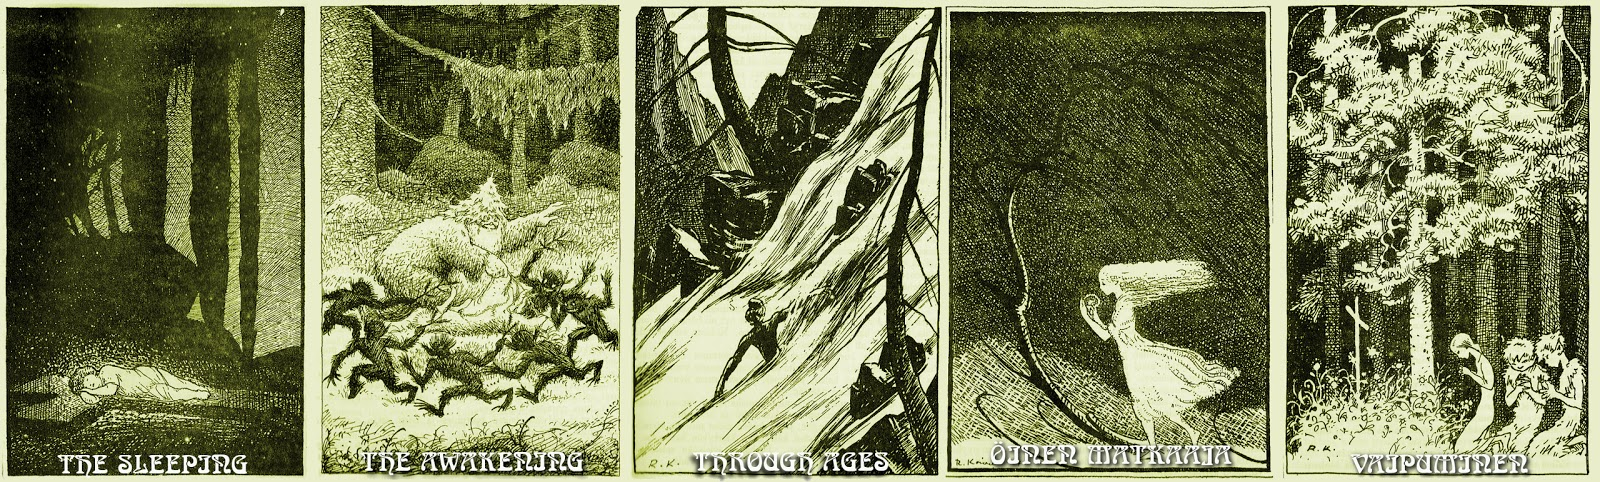 The Sleeping Green - track illustrations